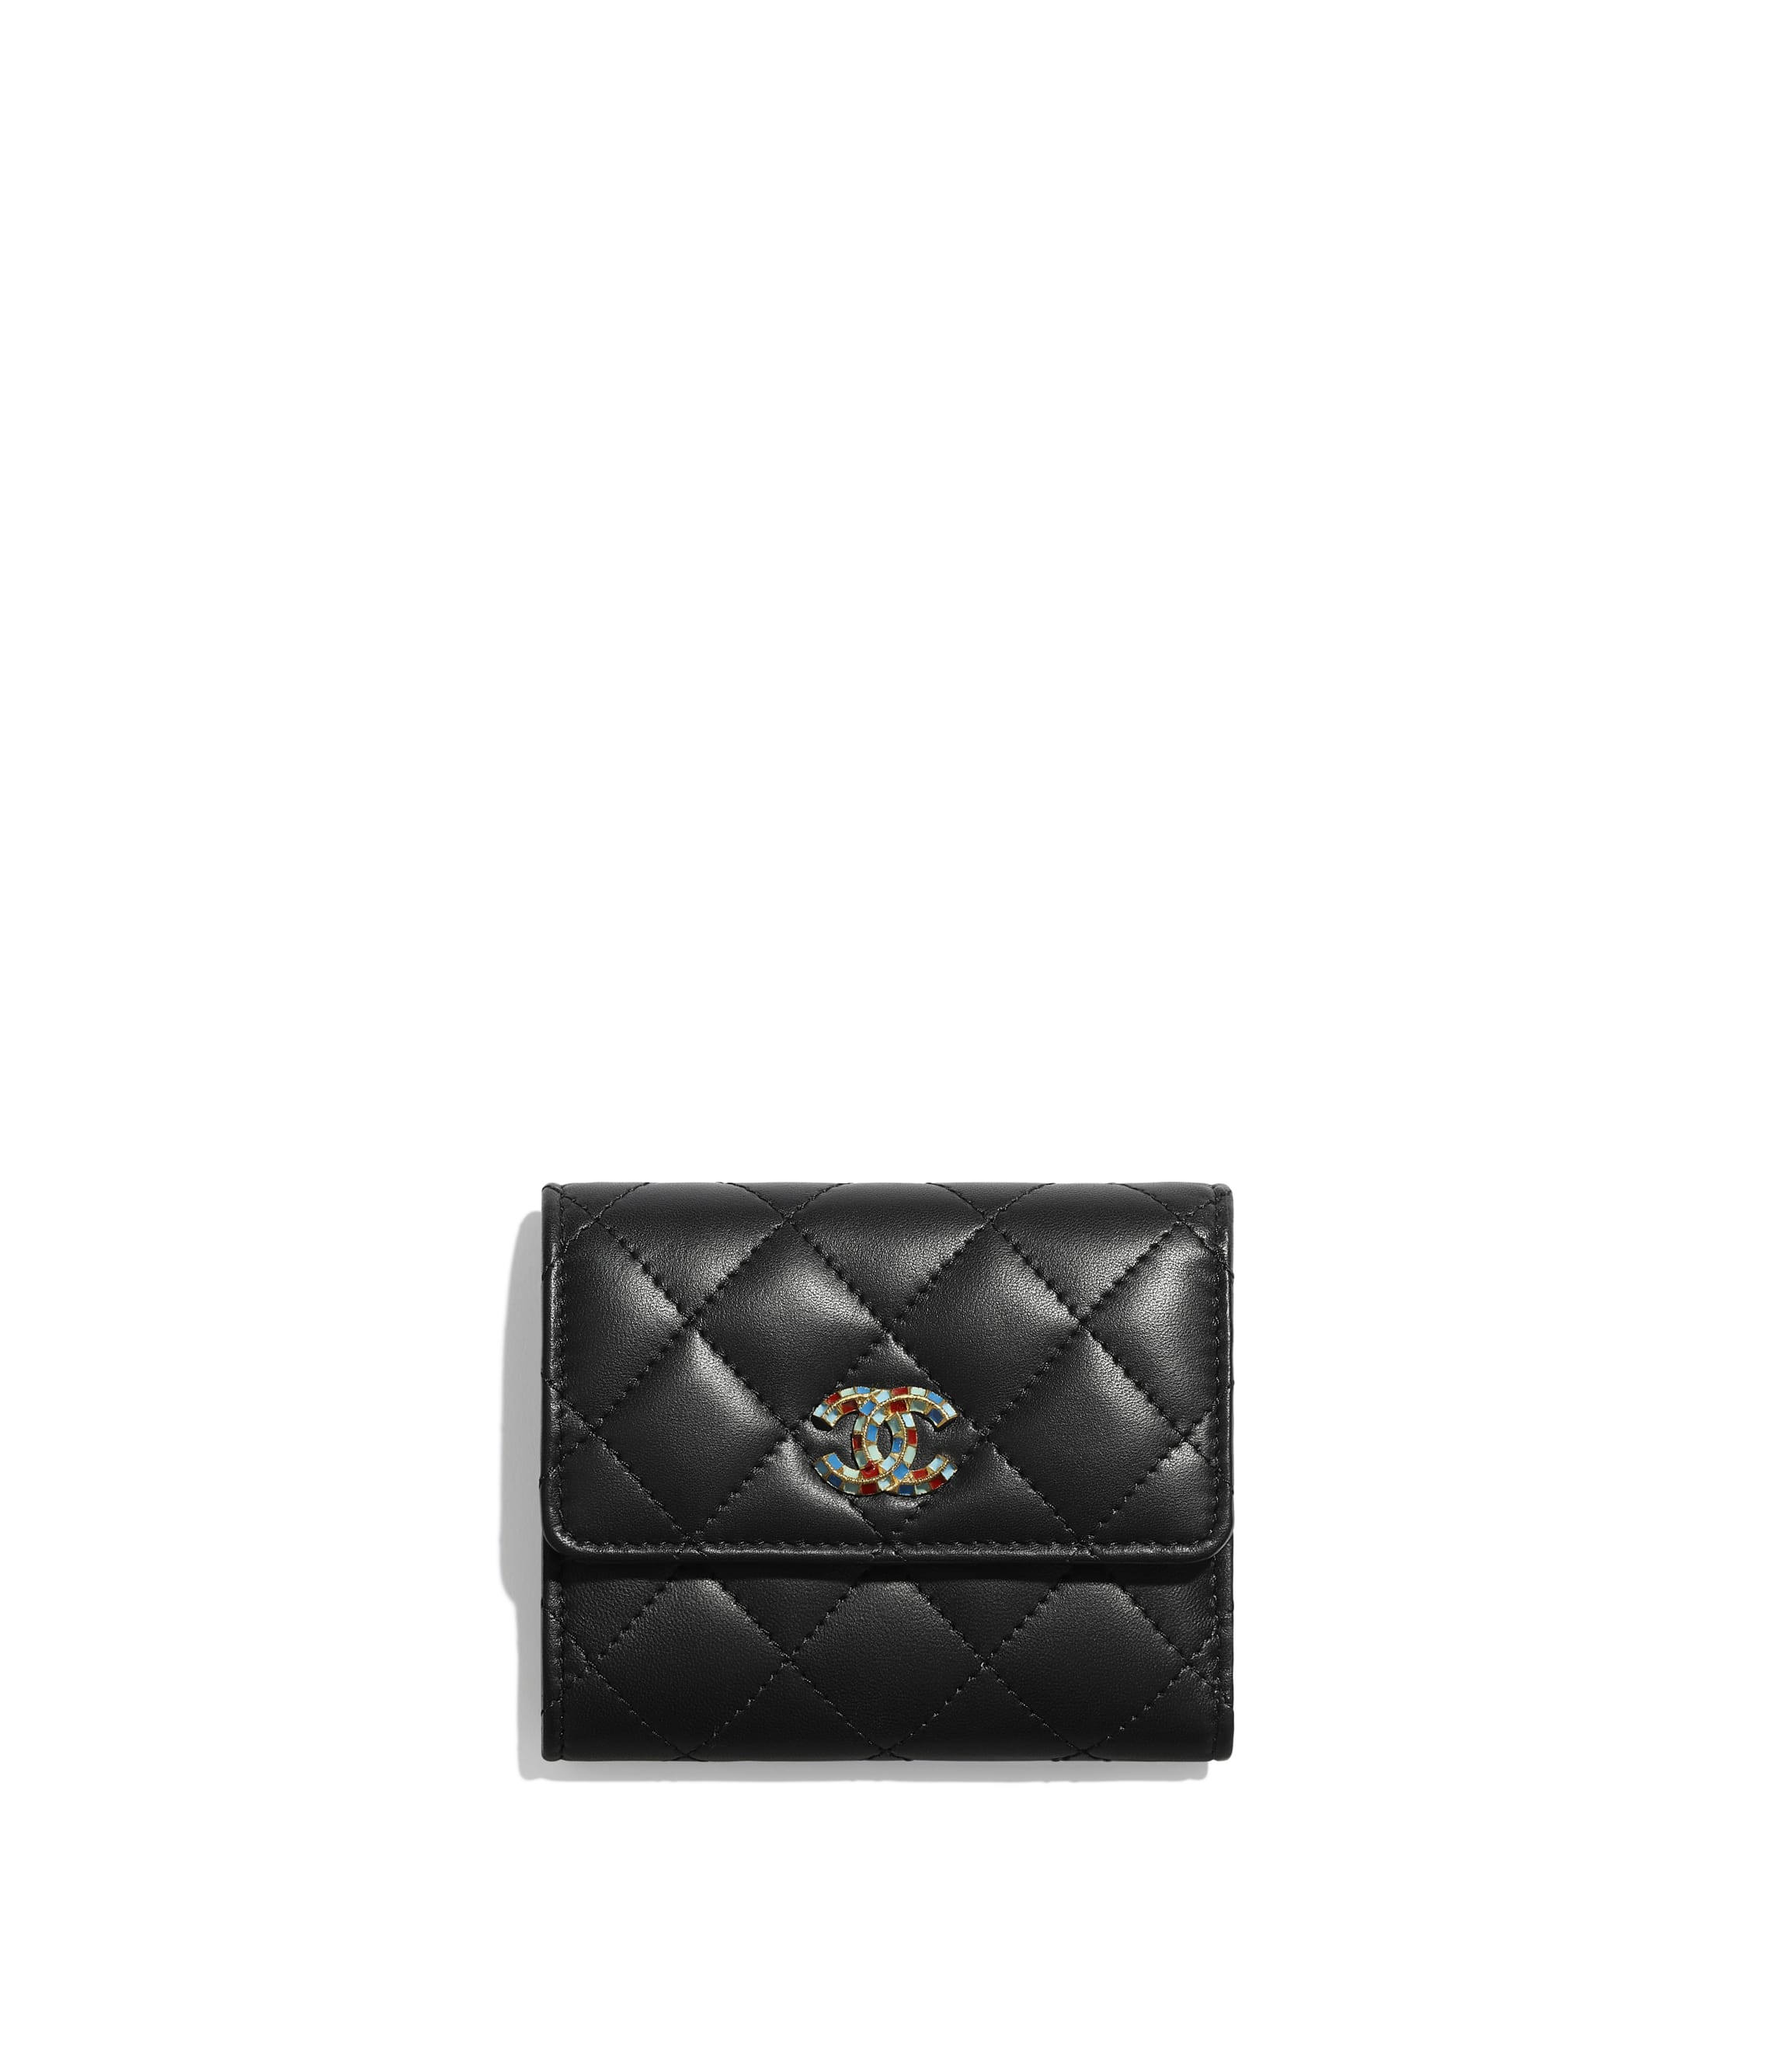 4407a03c57d6 Small Wallets - Small Leather Goods - CHANEL